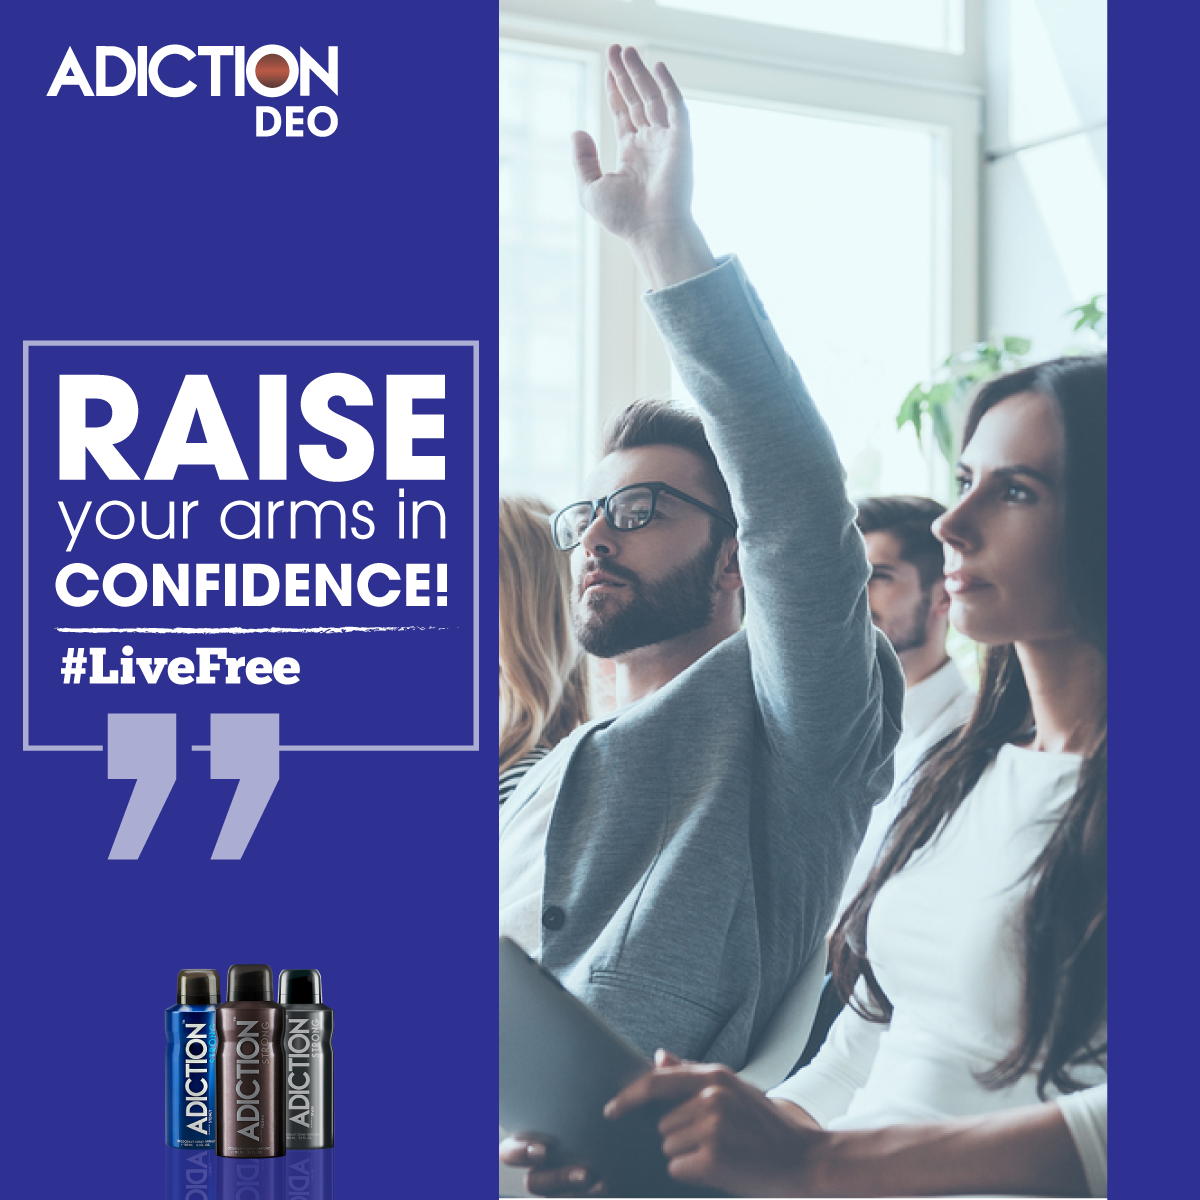 #Adiction gives you that very #confidence. https://t.co/zLsZrtqaWI